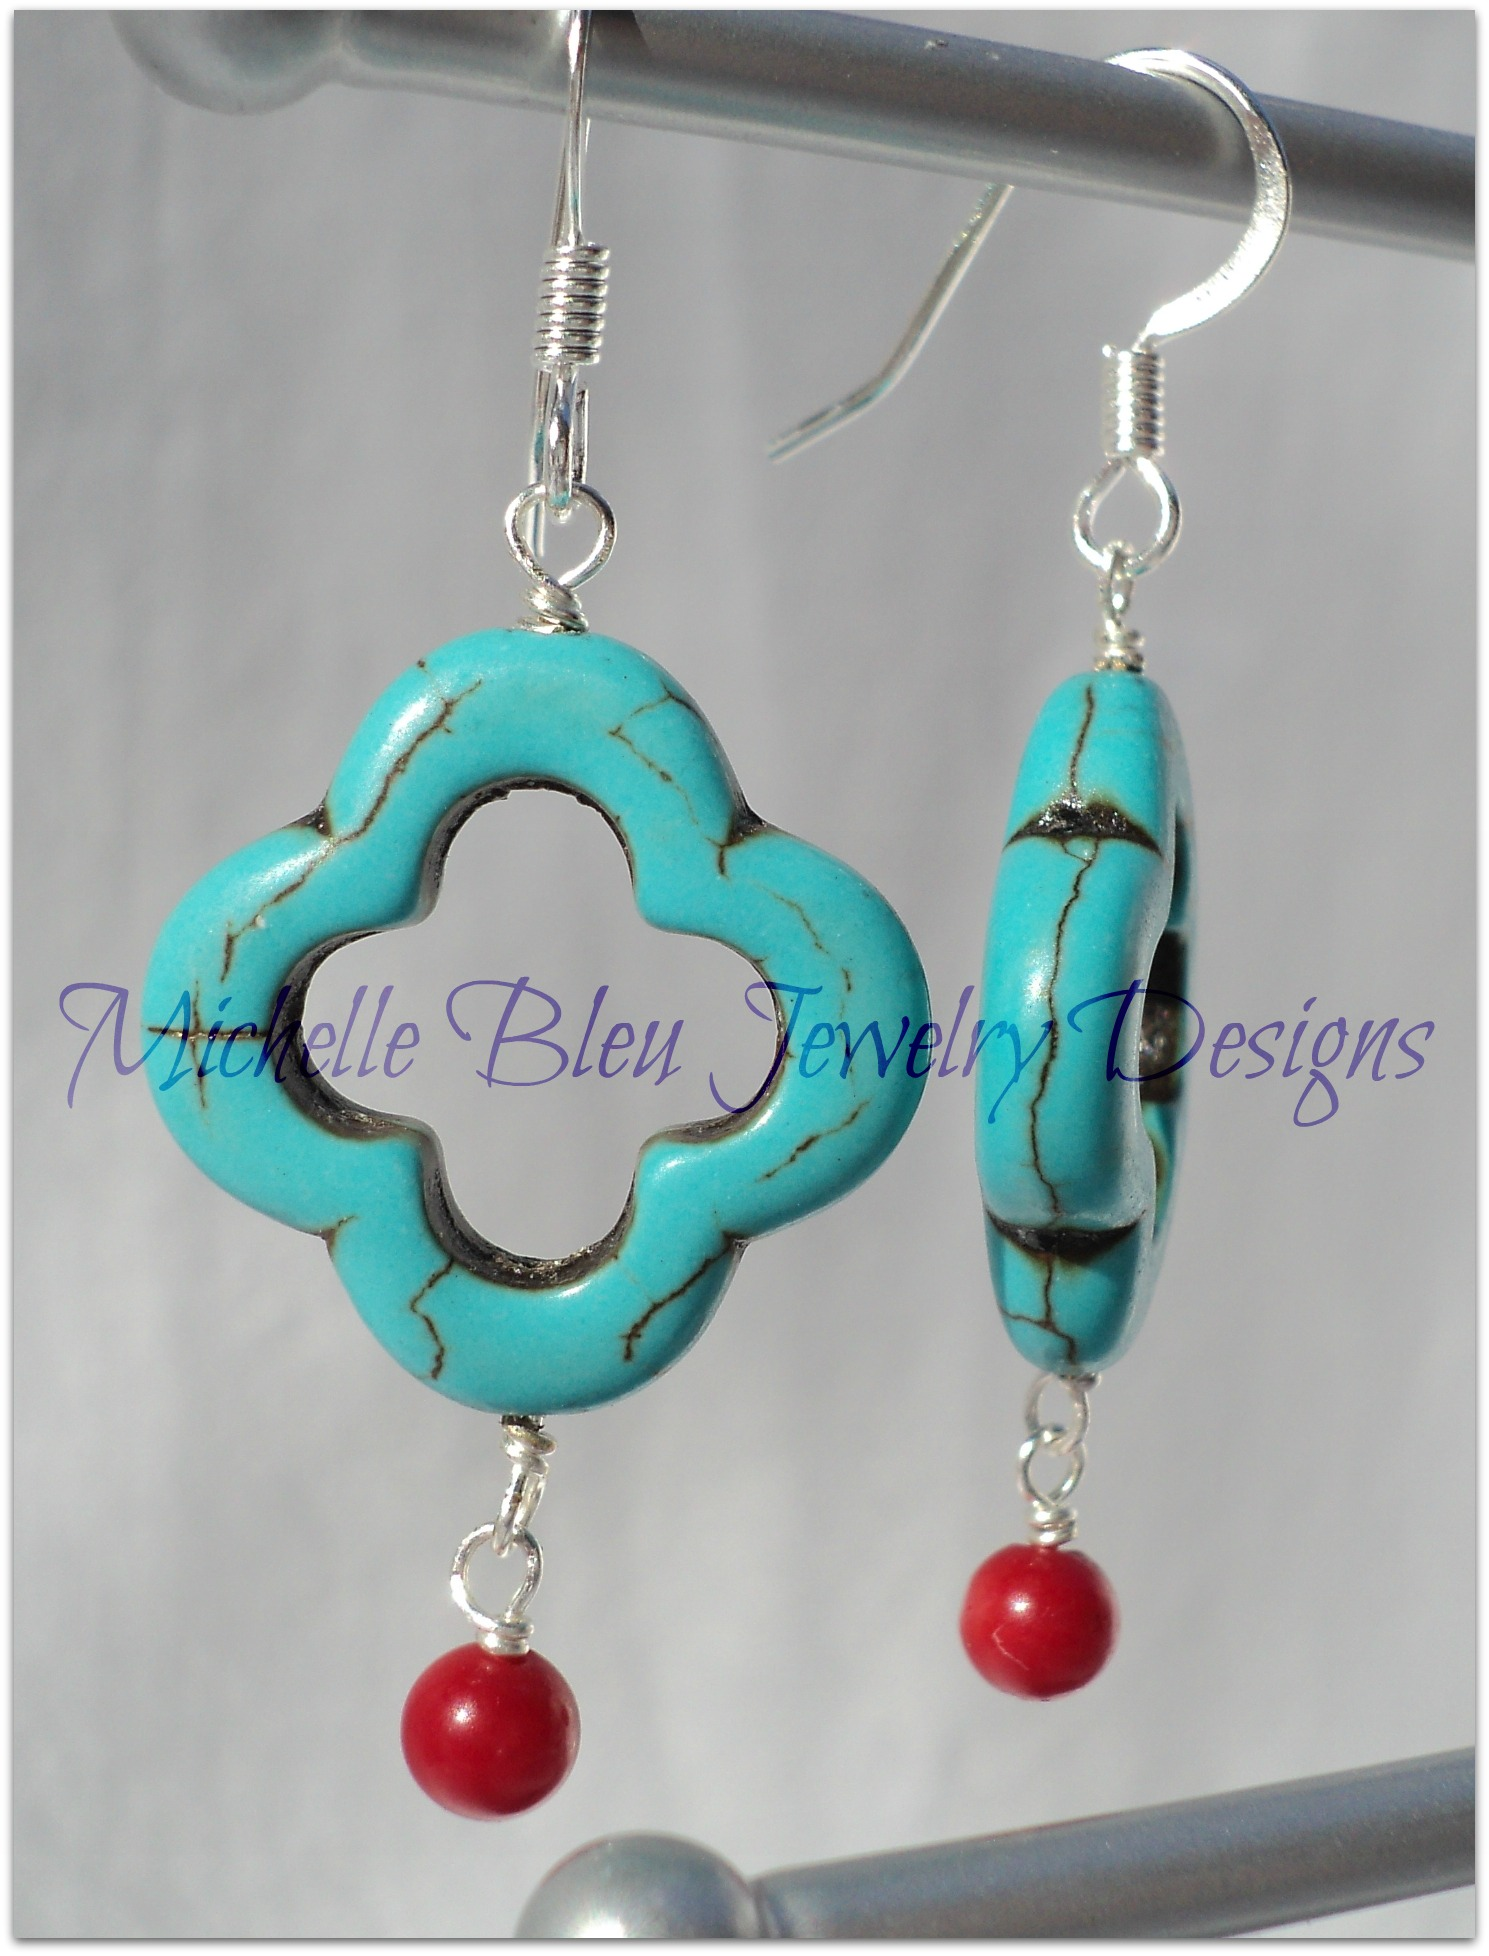 http://michellebleujewelry.storenvy.com/products/3480116-turquoise-and-red-carnelian-earrings